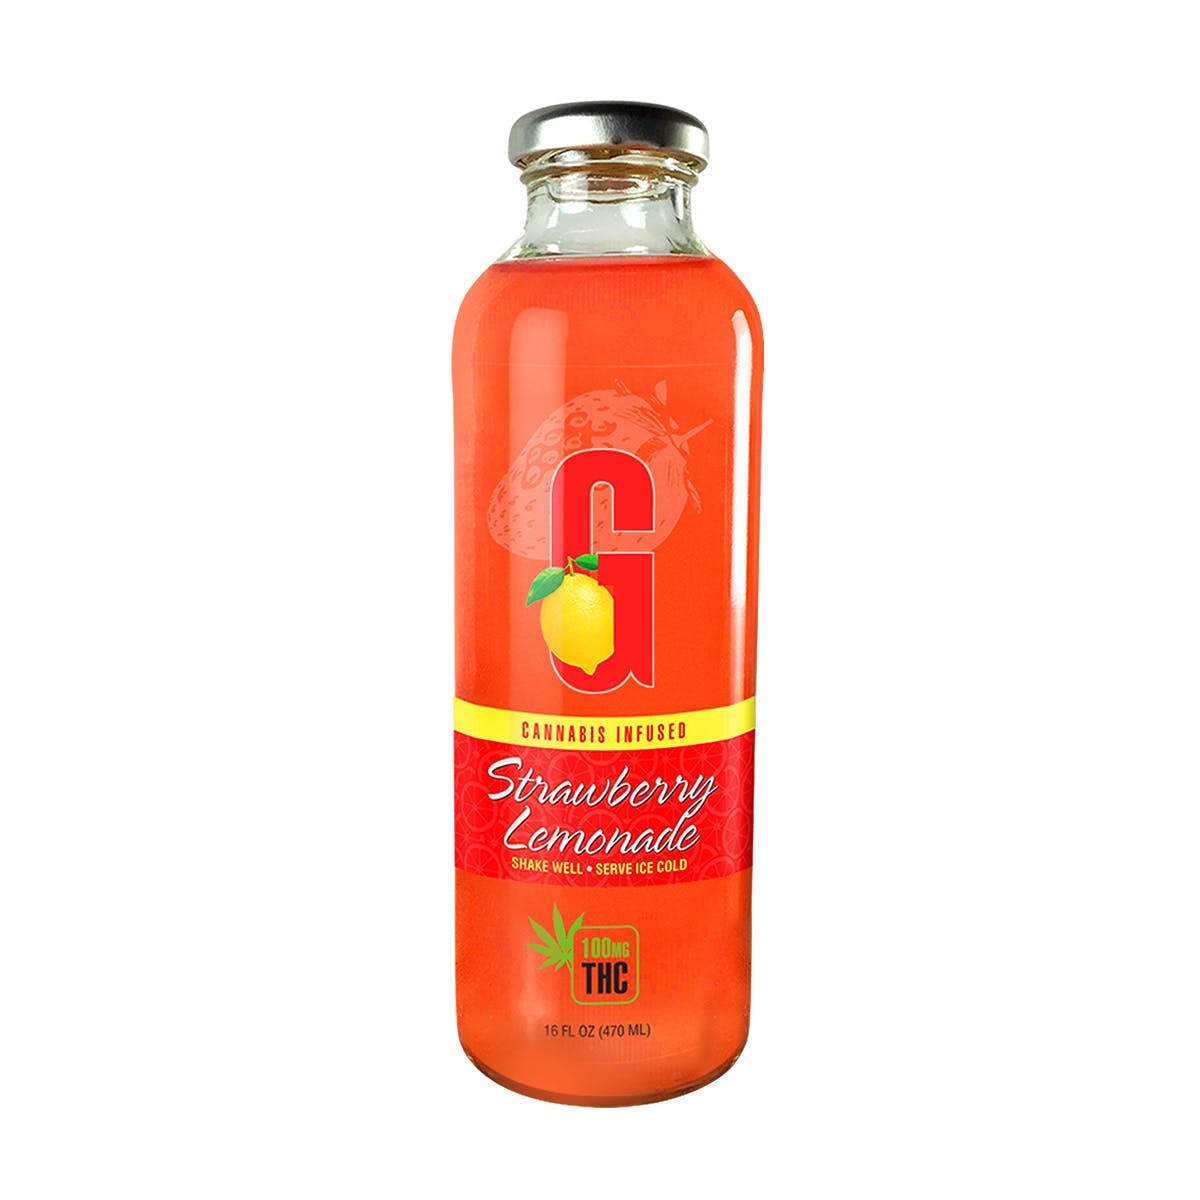 marijuana-dispensaries-weedway-in-tujunga-g-drinks-strawberry-lemonade-100mg